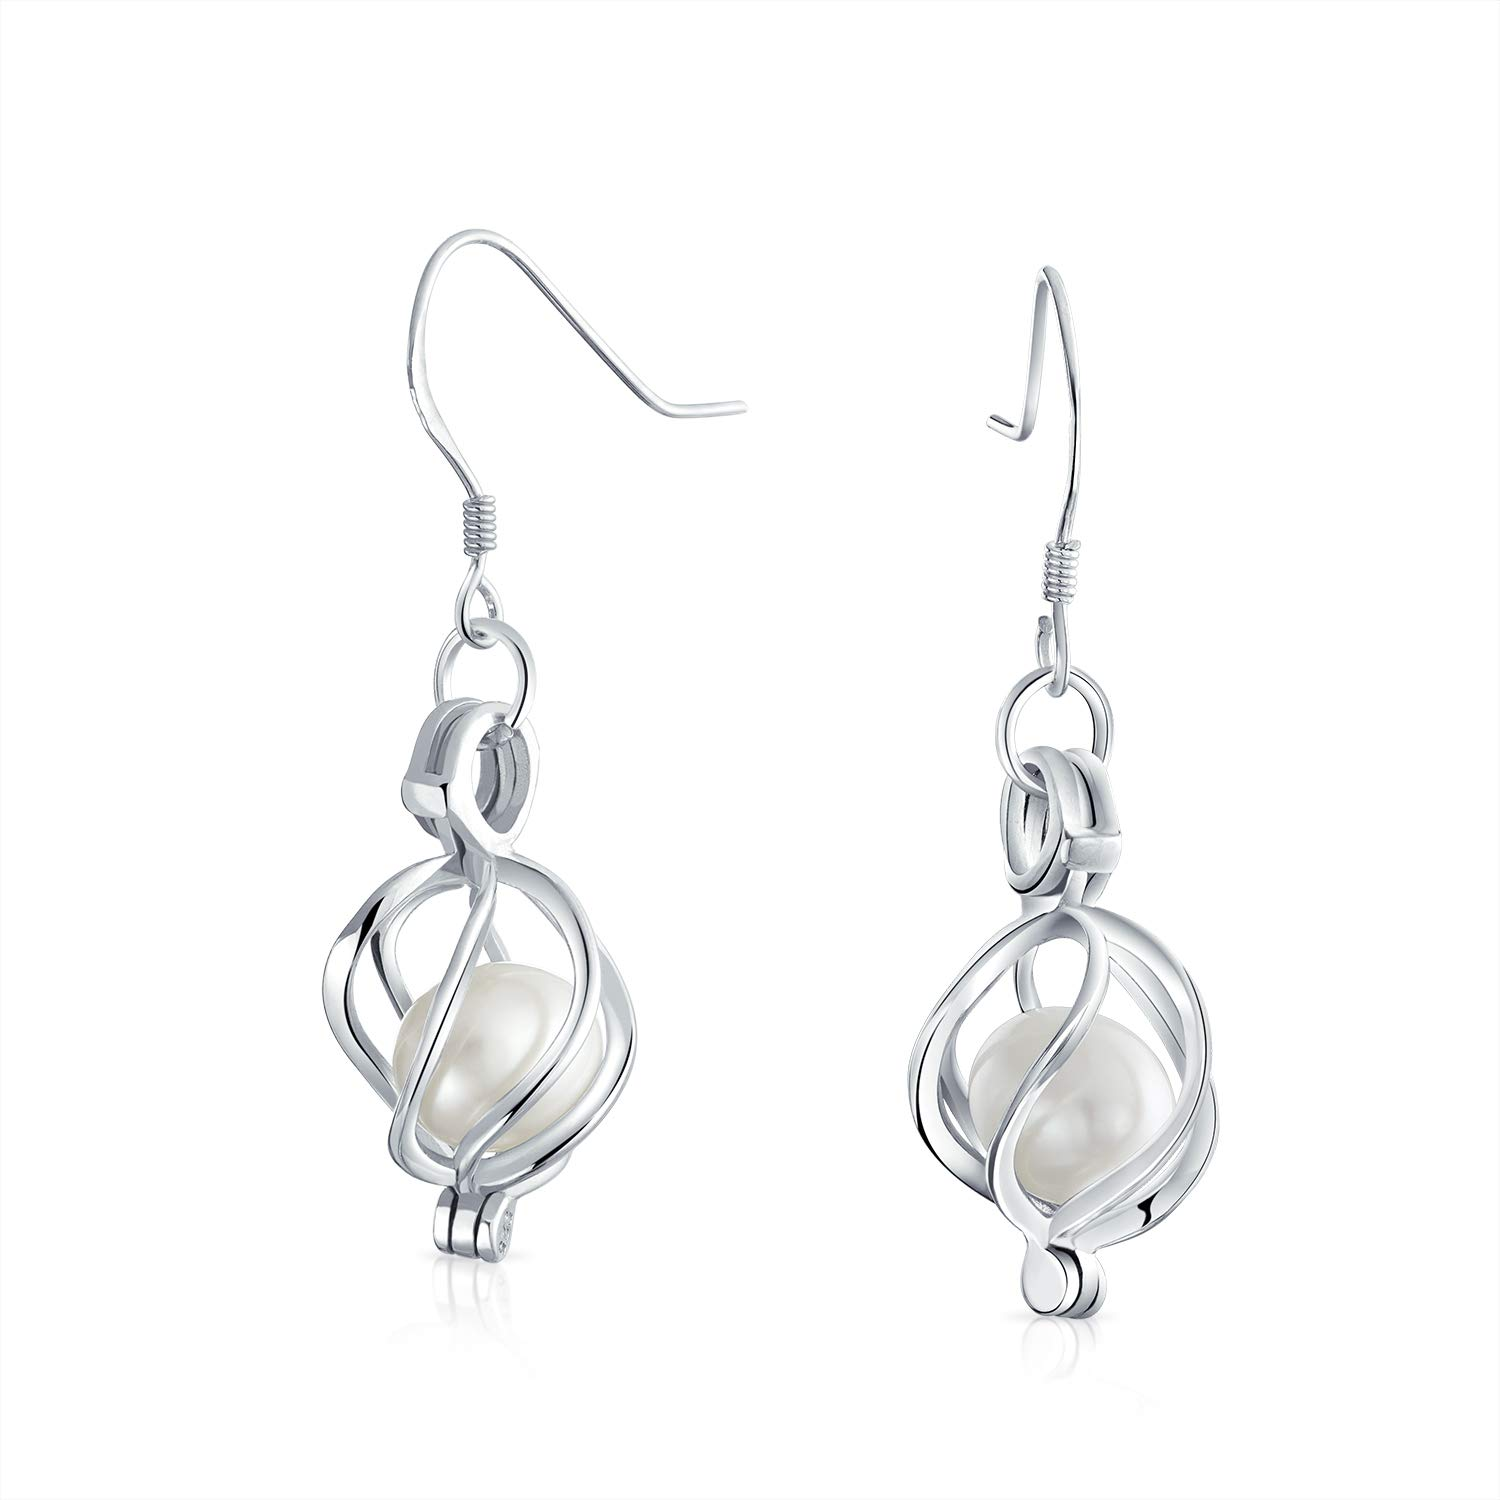 Black White Bridal Freshwater Bird Caged Cultured Pearl Drop Earrings For Women 925 Sterling Silver French Wire Hook